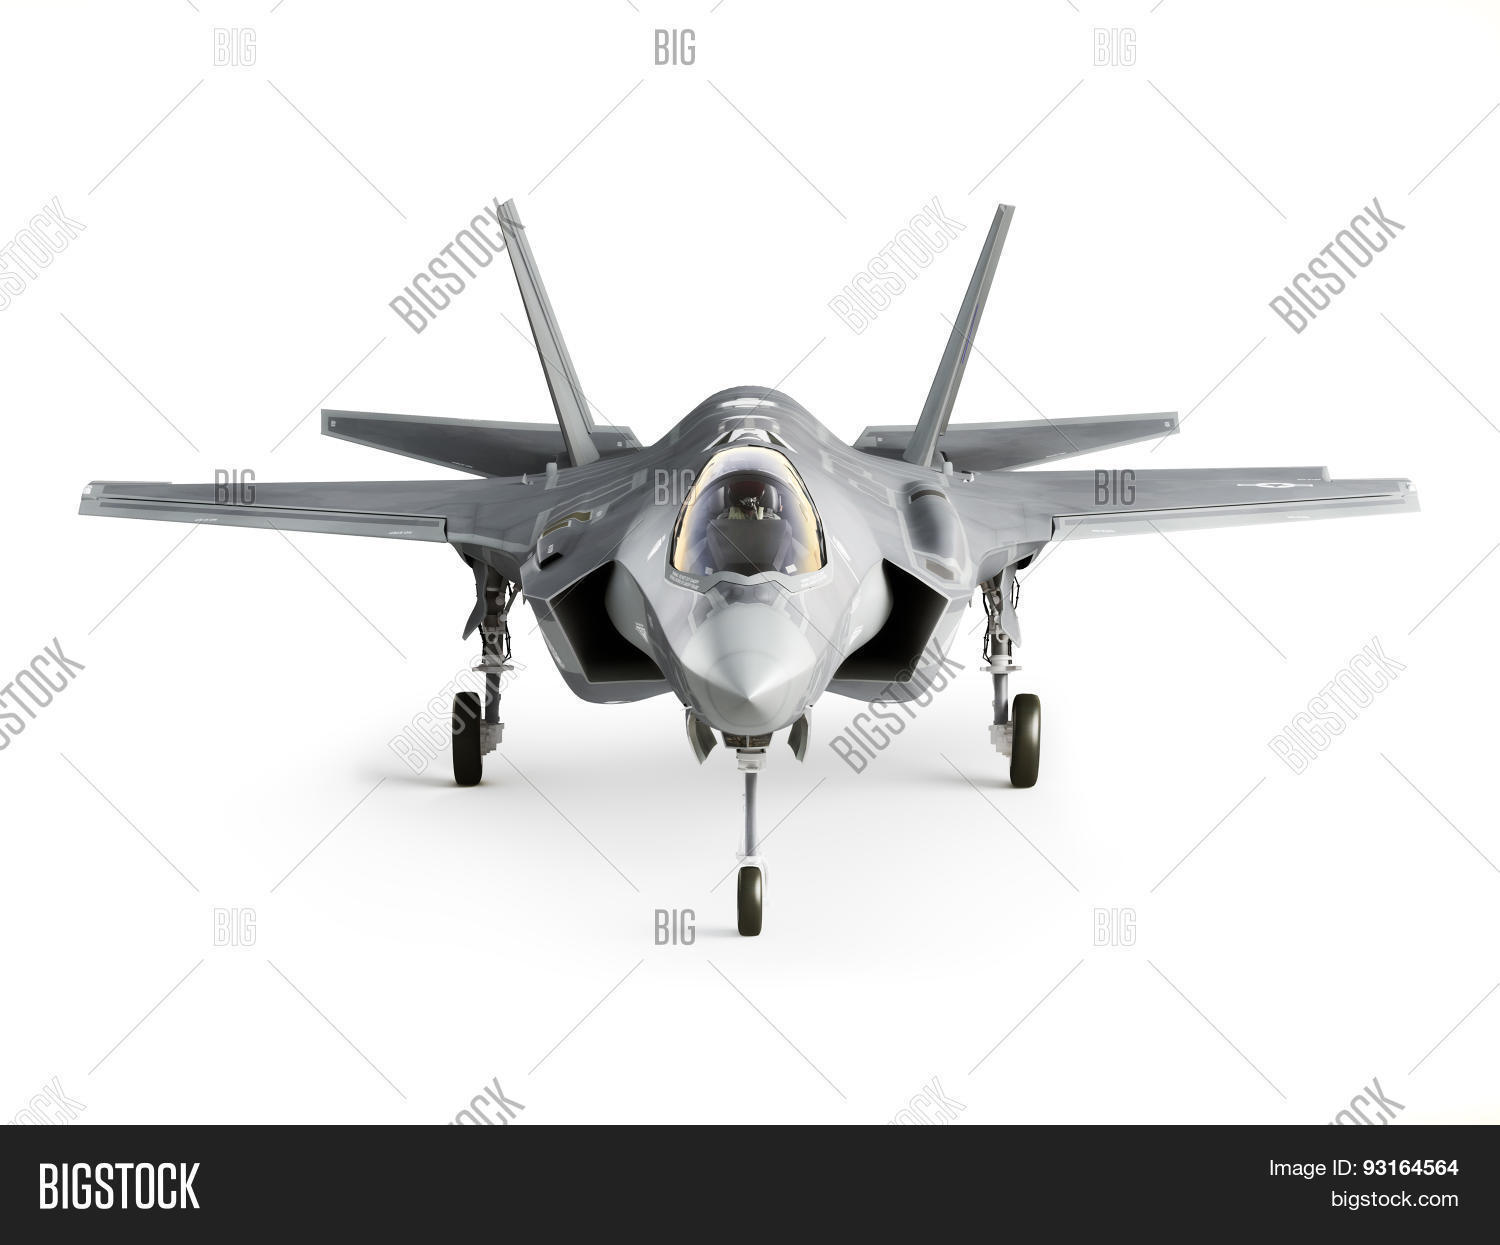 advanced,aerial,aeronautics,air,aircraft,attack,aviation,background,bomber,close-up,combat,corps,demonstration,design,display,f-35,f35,fighter,fighter jet,fighting,flying,force,front,generation,industry,jet,joint,lightning,machine,macro,marine,military,military background,modern,nation,navy,new,next,plane,shot,show,static,stealth,strike,supersonic,system,technology,trade,trade show,transportation,vehicle,view,weapon,white